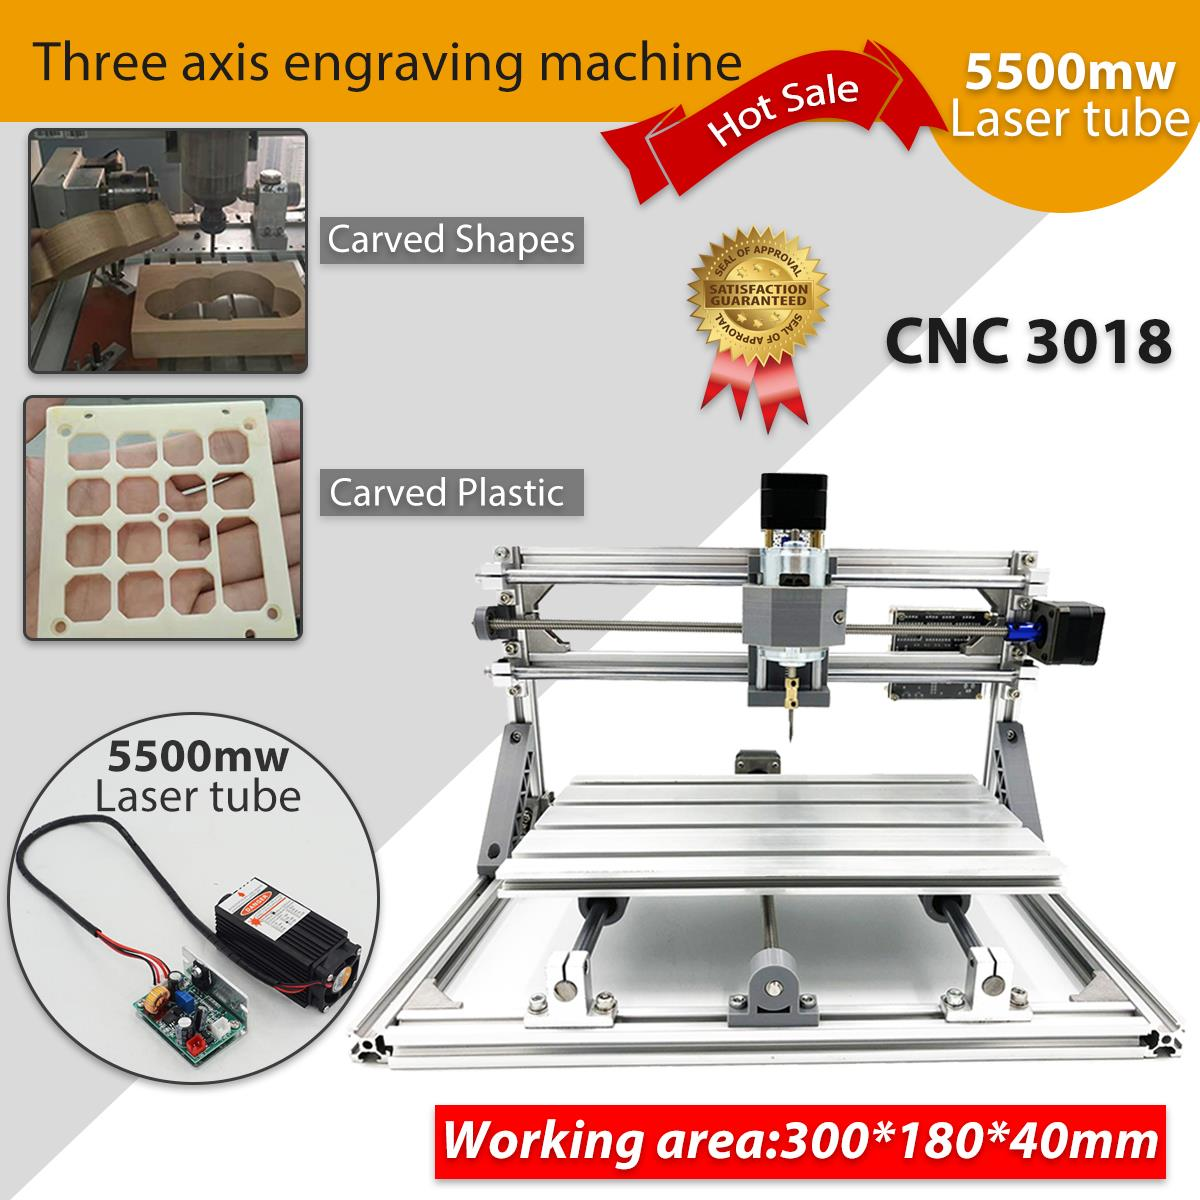 CNC 3018 Mini Engraving Machine 5500mw/2500mw Laser PCB Milling Machine Wood Carving Machine GRBL Control CNC Router Kit cnc router lathe mini cnc engraving machine 3020 cnc milling and drilling machine for wood pcb plastic carving